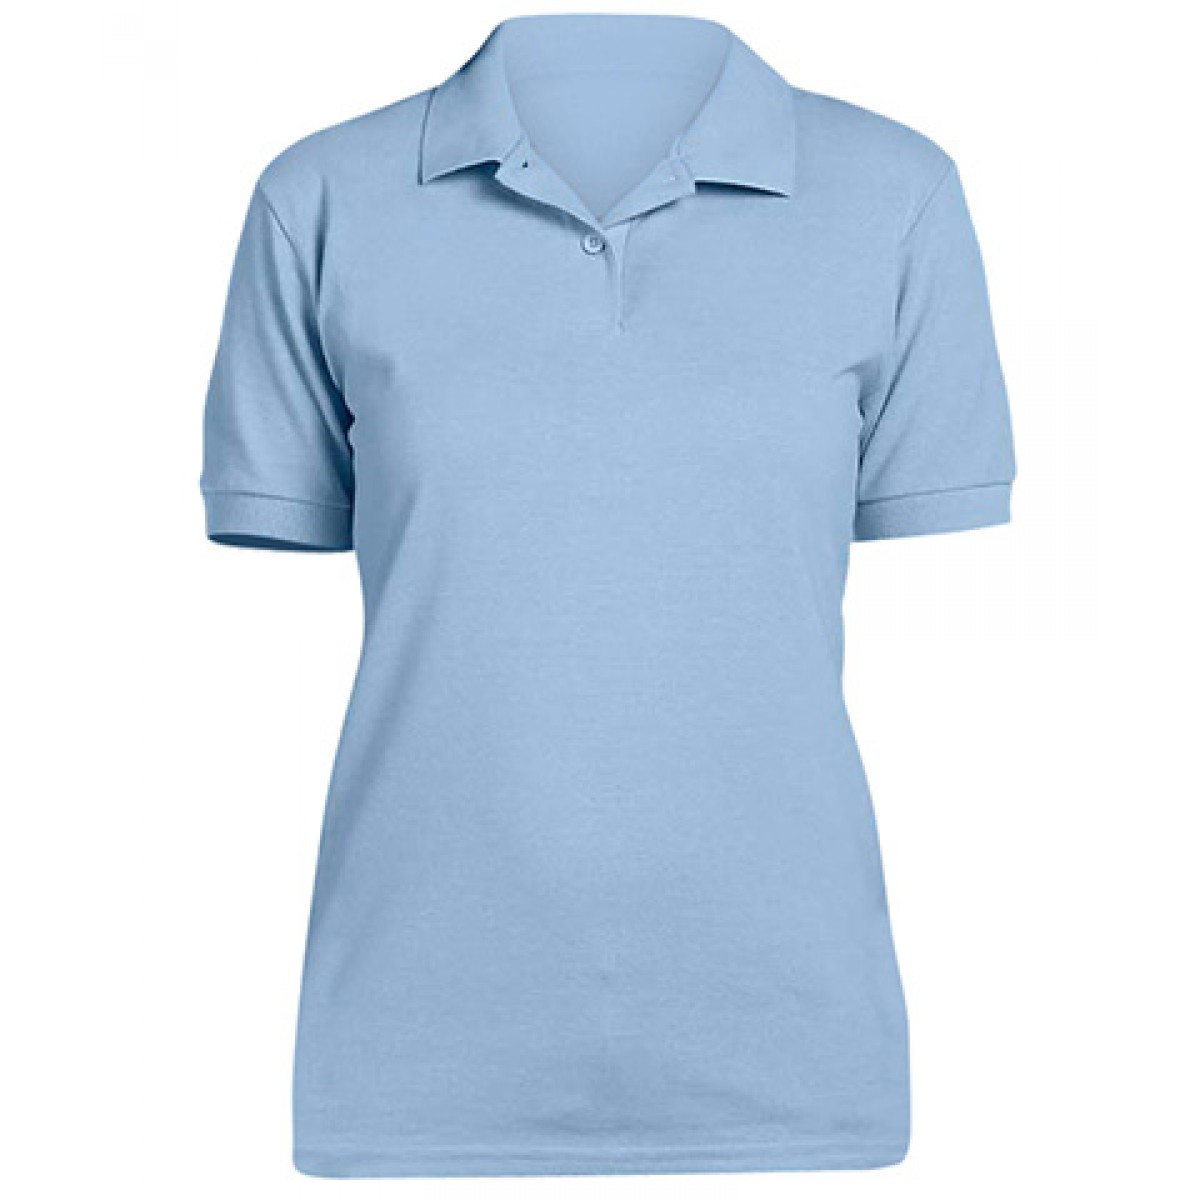 Ladies' 6.5 oz. Piqué Sport Shirt-Blue-M